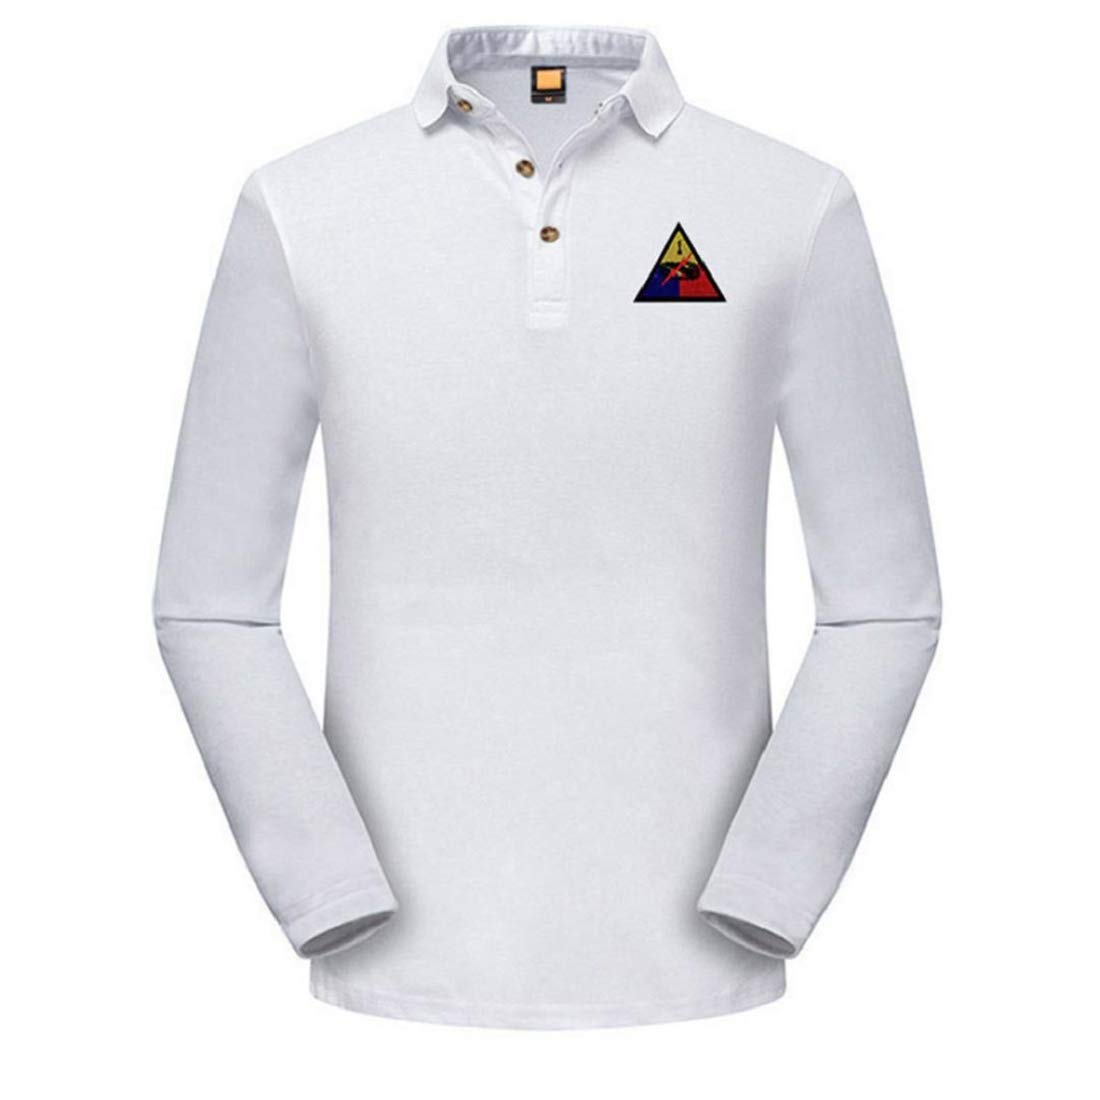 7d76bf430ba0 ... Long Sleeve Embroidery Shirts Slim Fit Polo Shirt Top Blouse. Wholesale  Price:9.05. Imported Package include:1PC Tops---It is a great idea for  friends ...